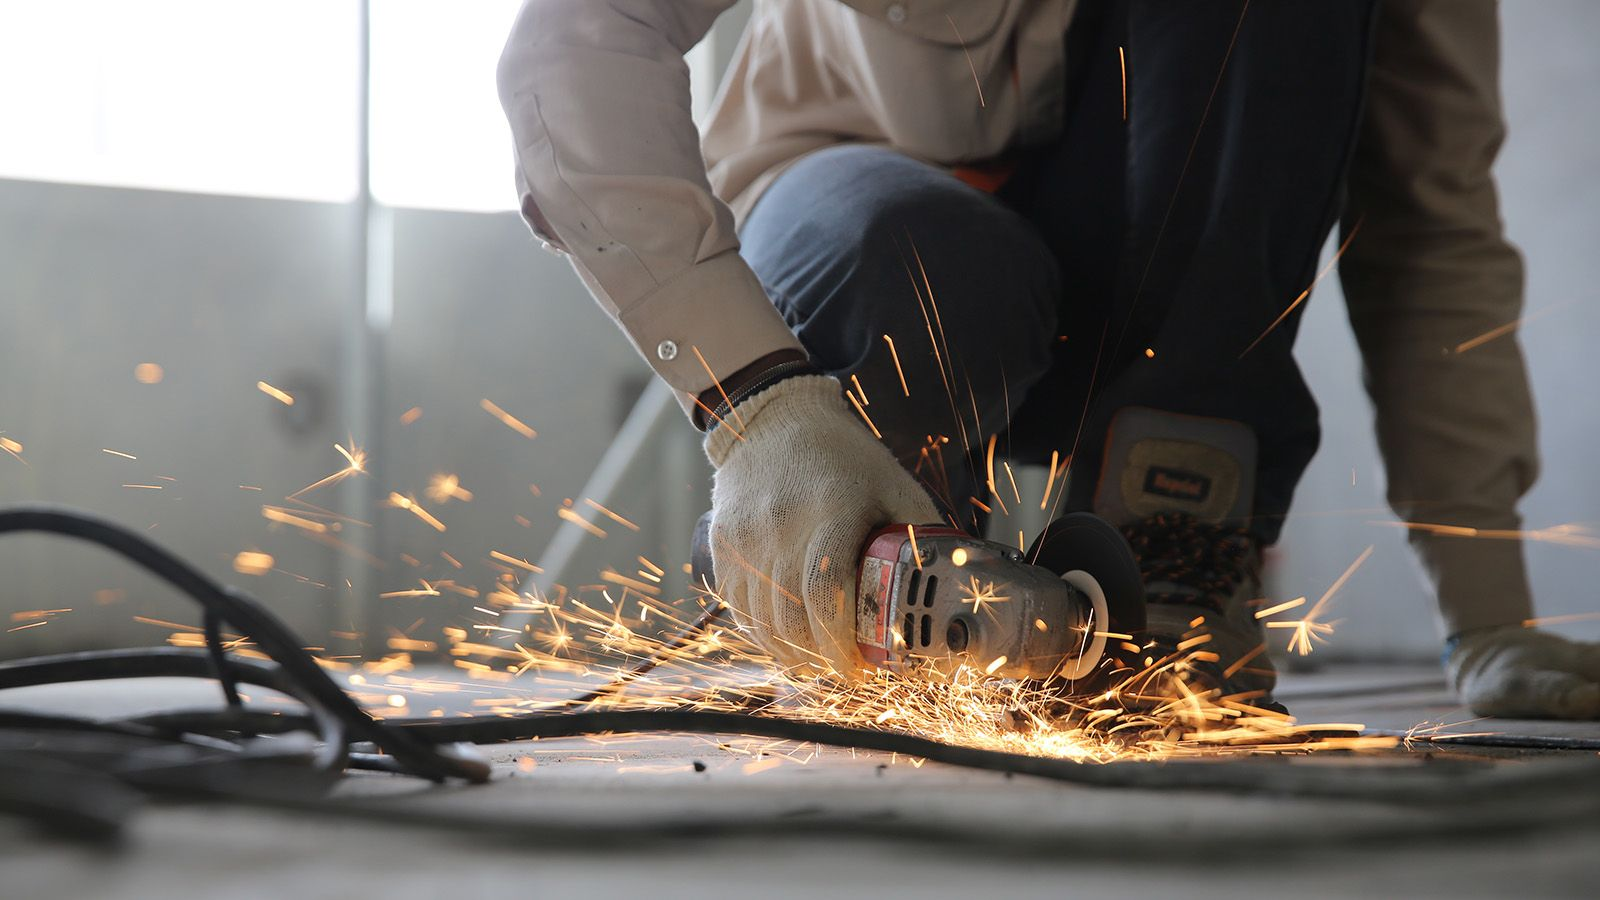 A man using a grinder powertool, creating sparks banner image